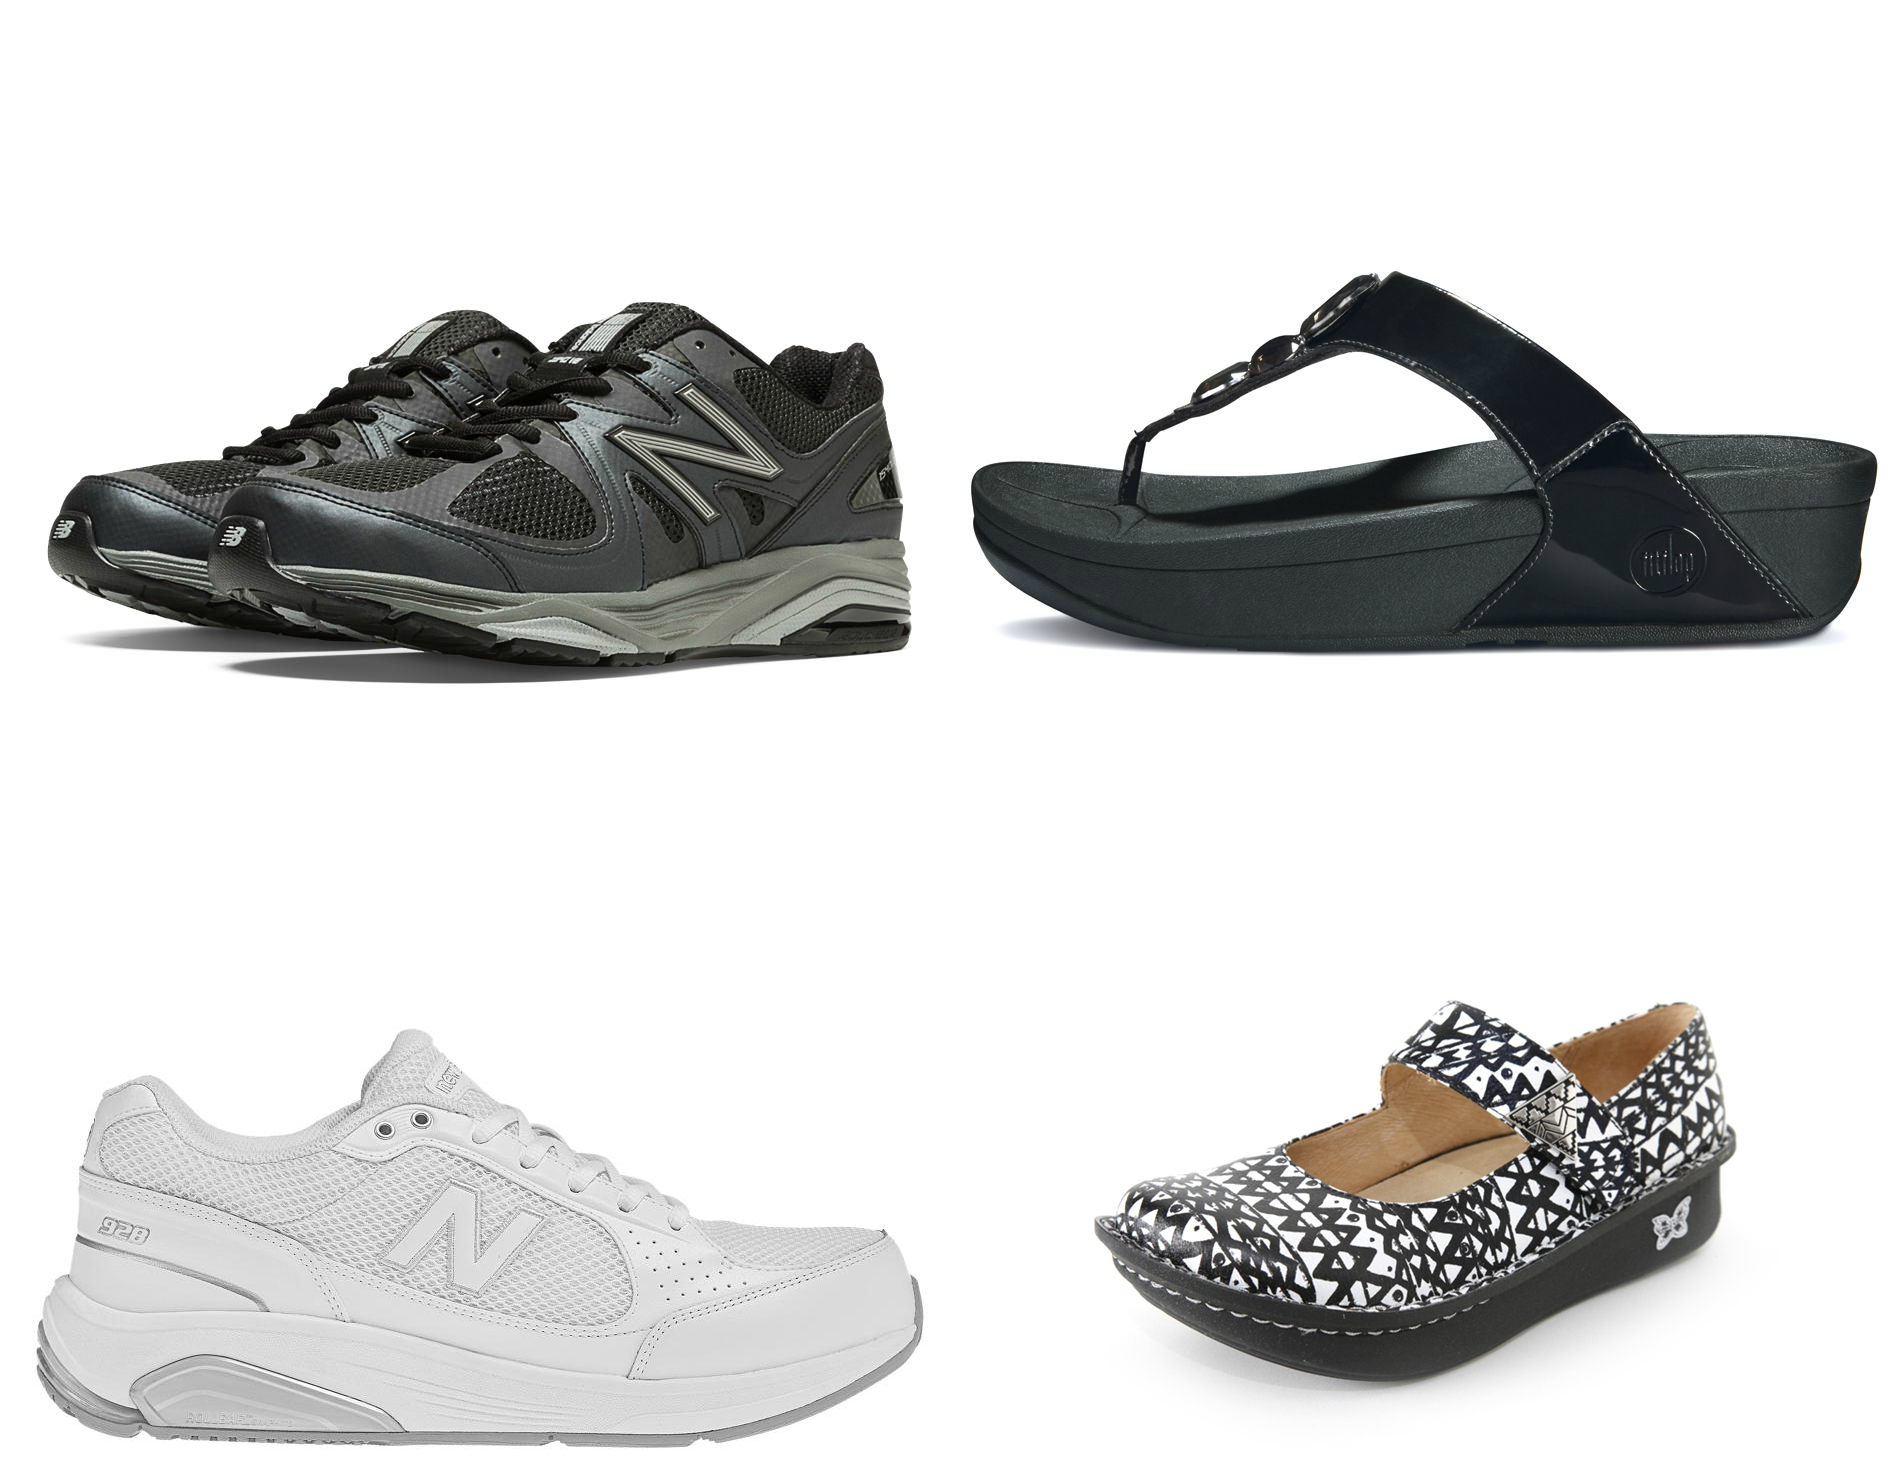 In this post you will find the list of the best shoes for plantar fasciitis.